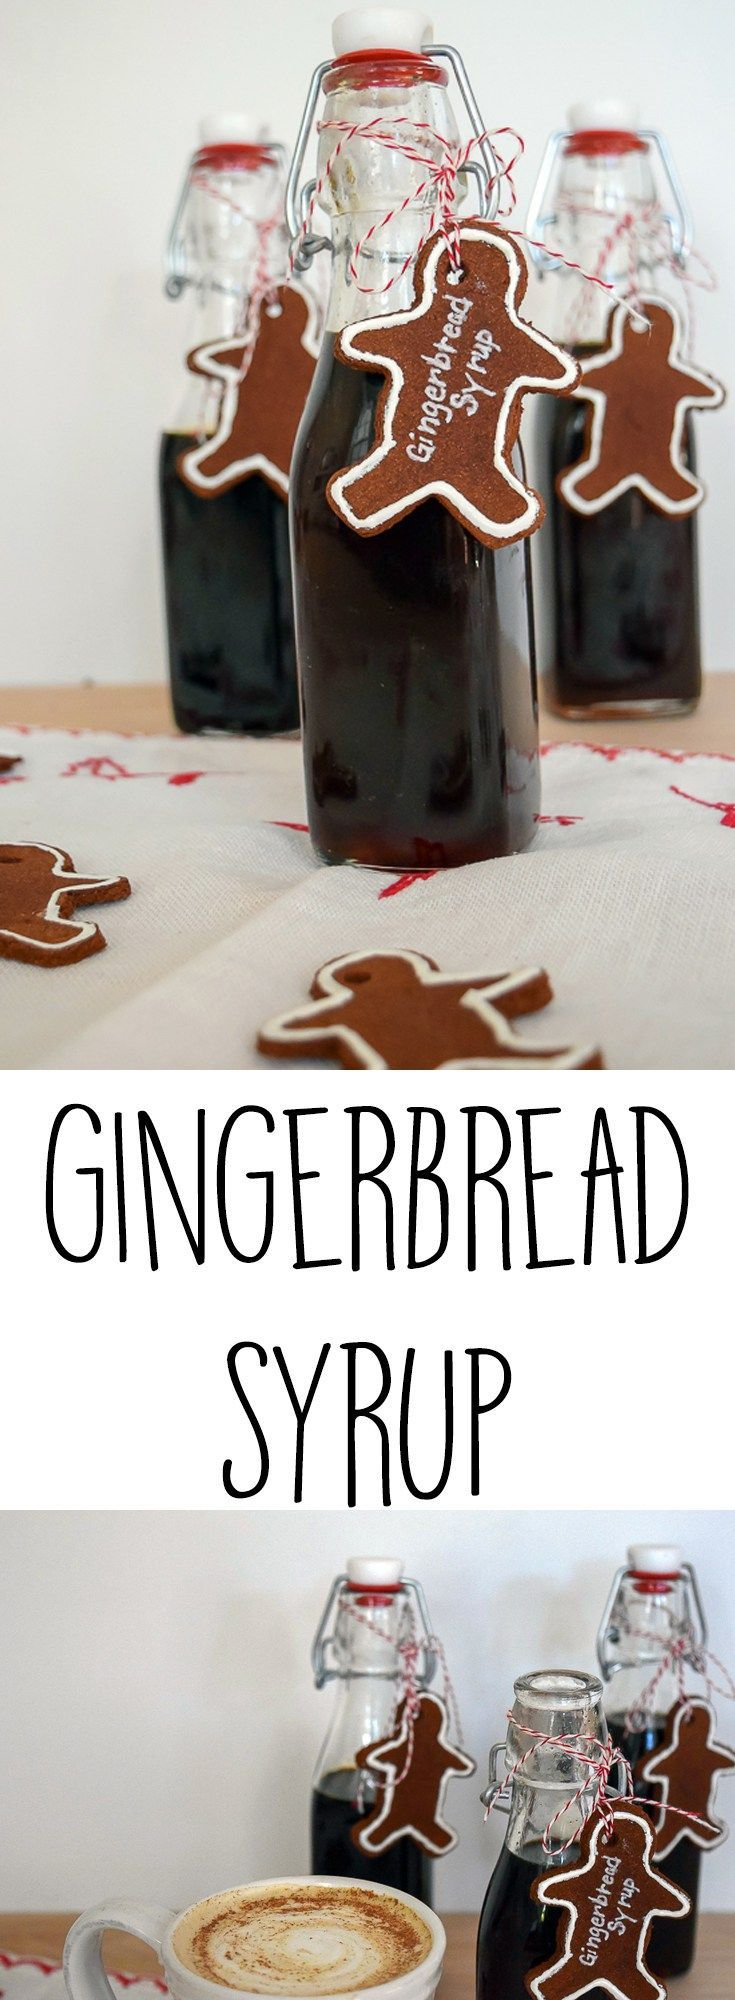 Gingerbread Syrup Recipe Gingerbread Syrup Homemade Coffee Syrup Spiced Coffee